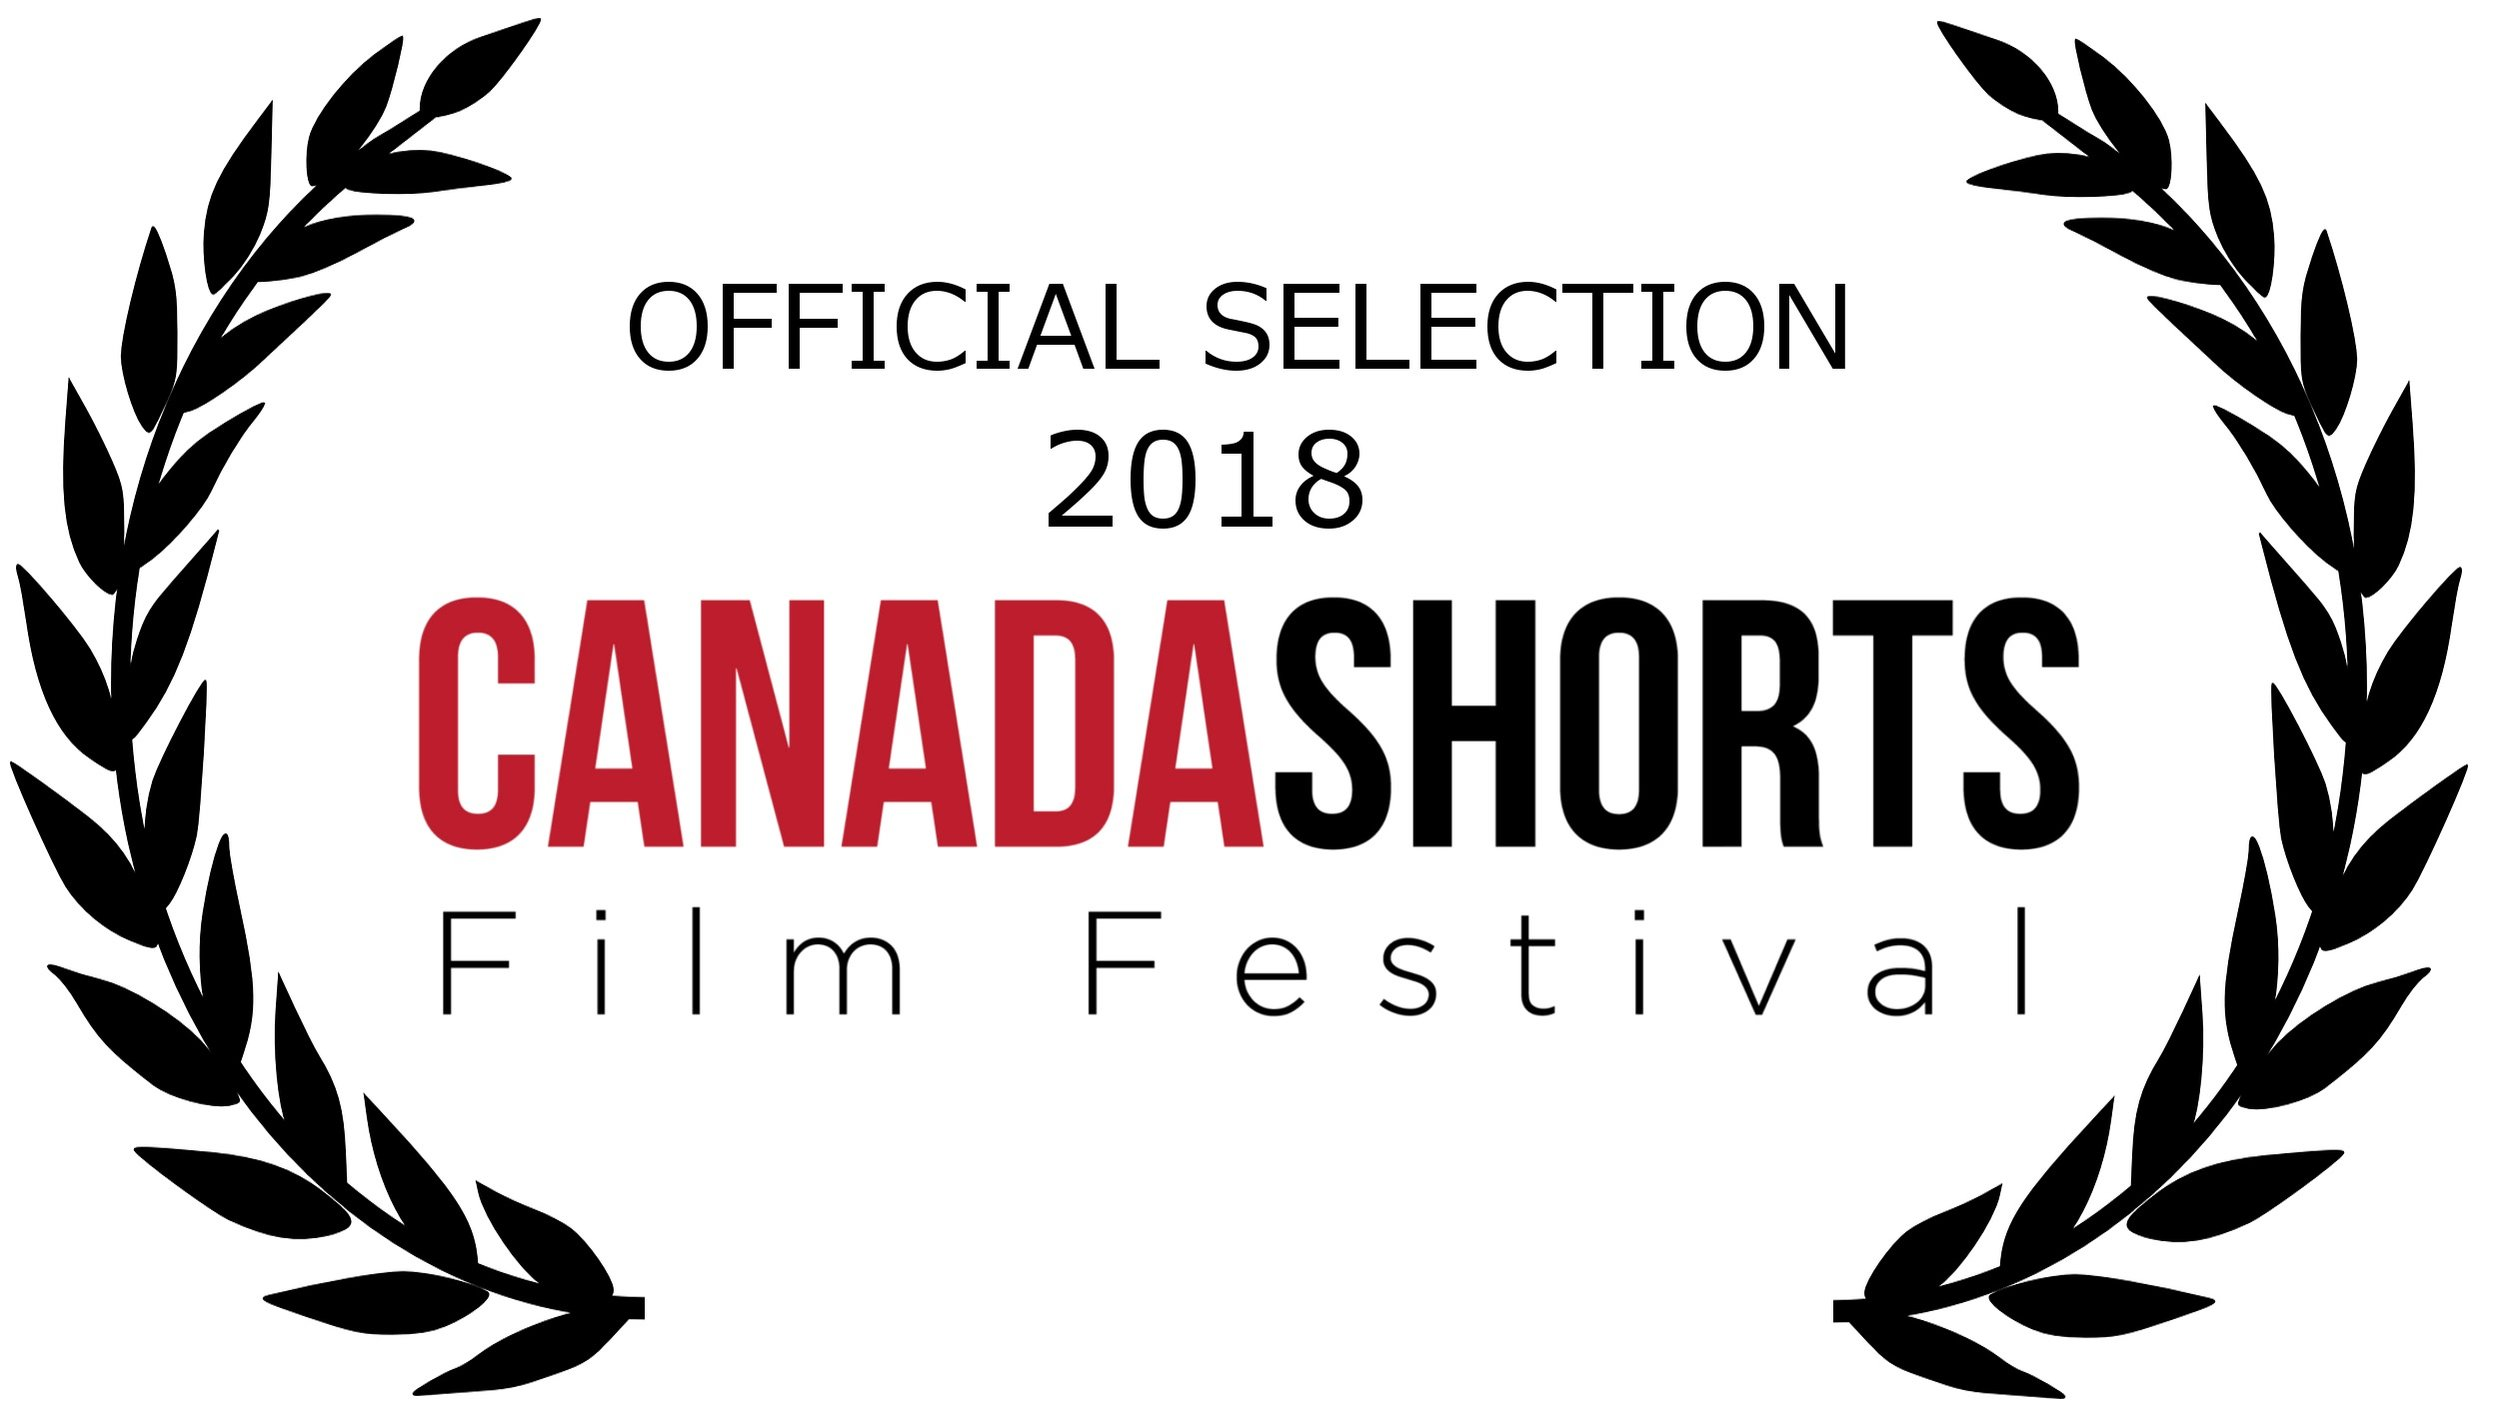 Canada Shorts official selection laurel - black copy.jpg